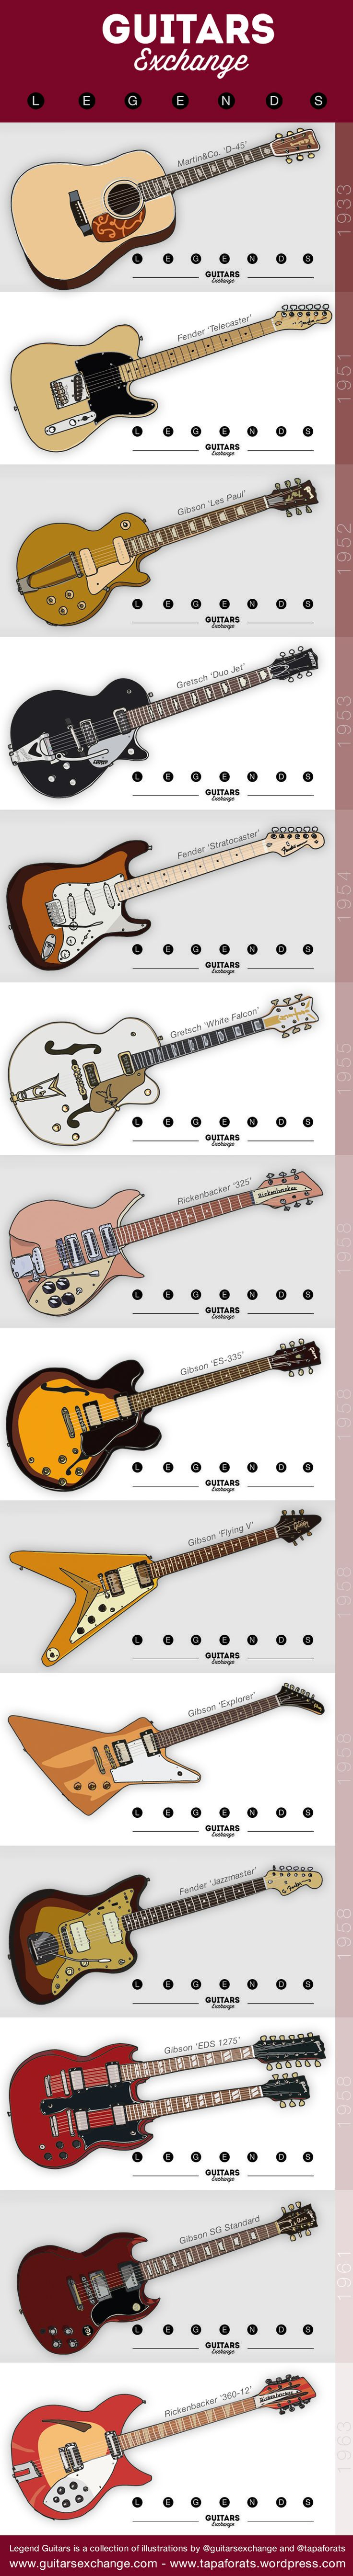 Timeline: Legends, the illustrated collection (www.guitarsexchange.com)